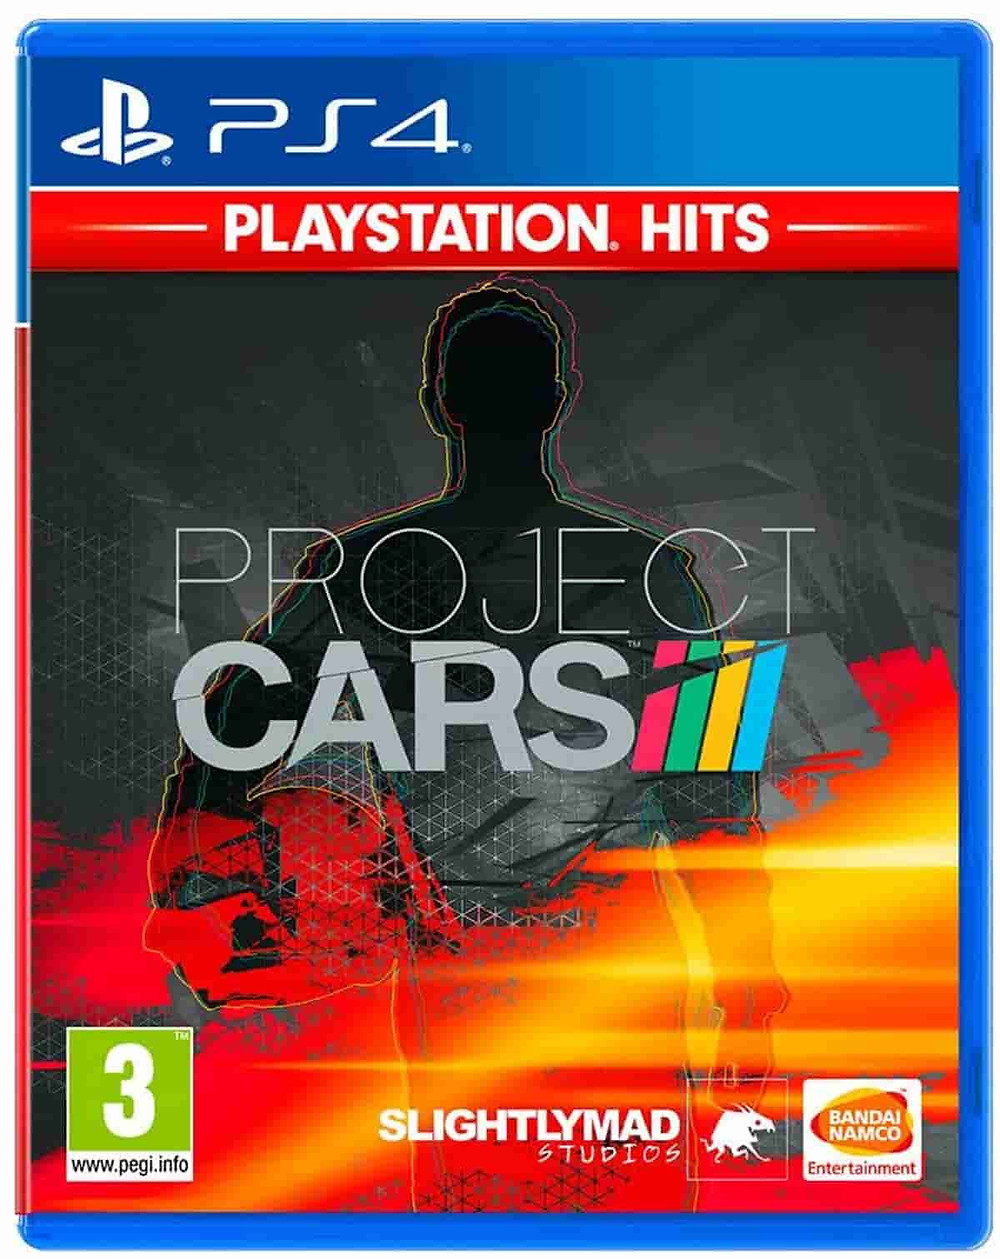 Juego imprescindible ps4: Project Cars